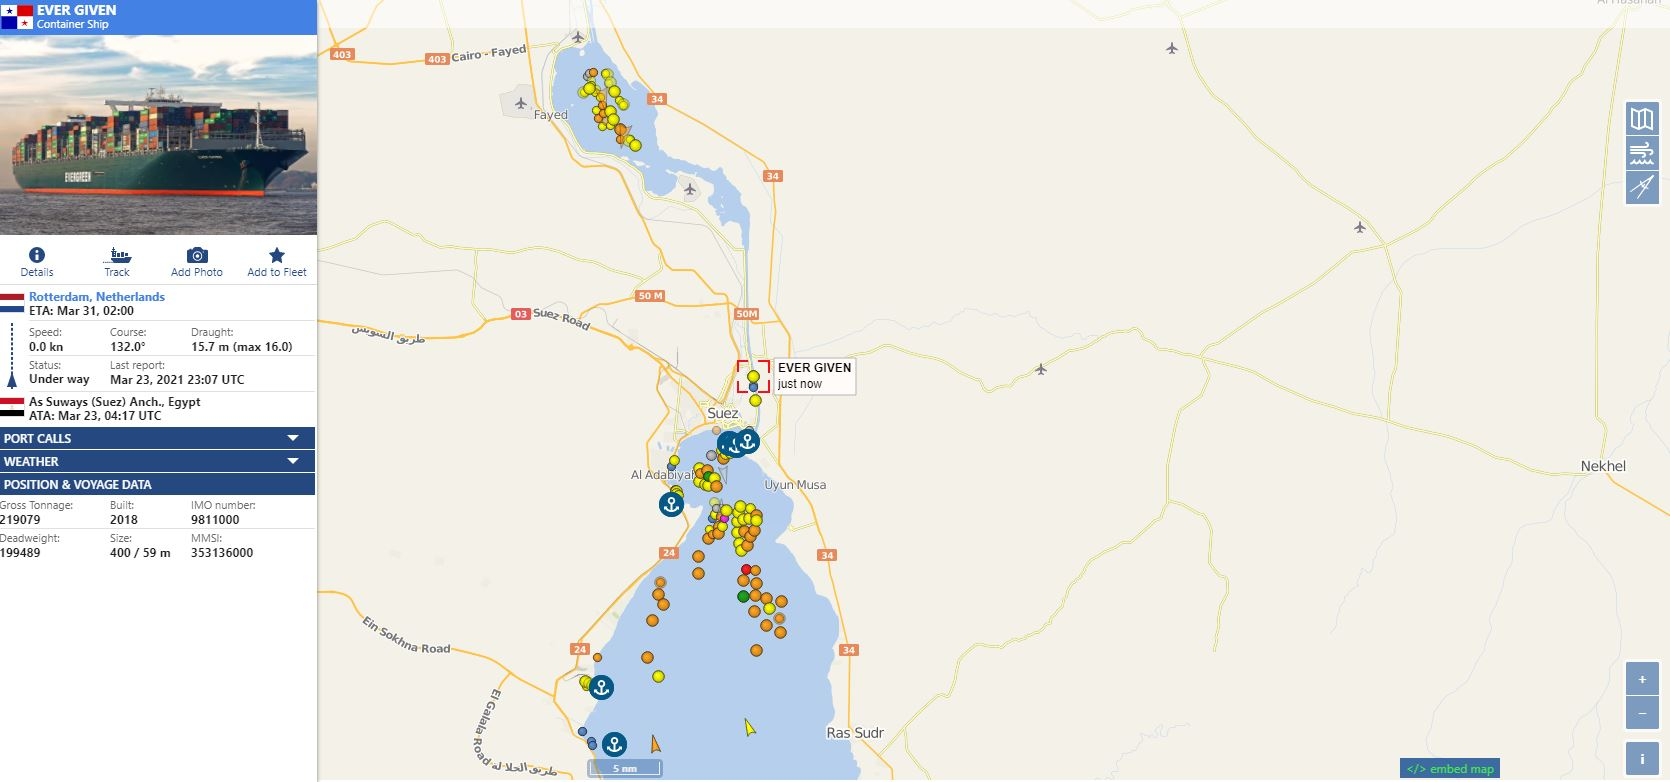 A map of the Suez Canal with multiple dots on either side of the route representing waiting ships.